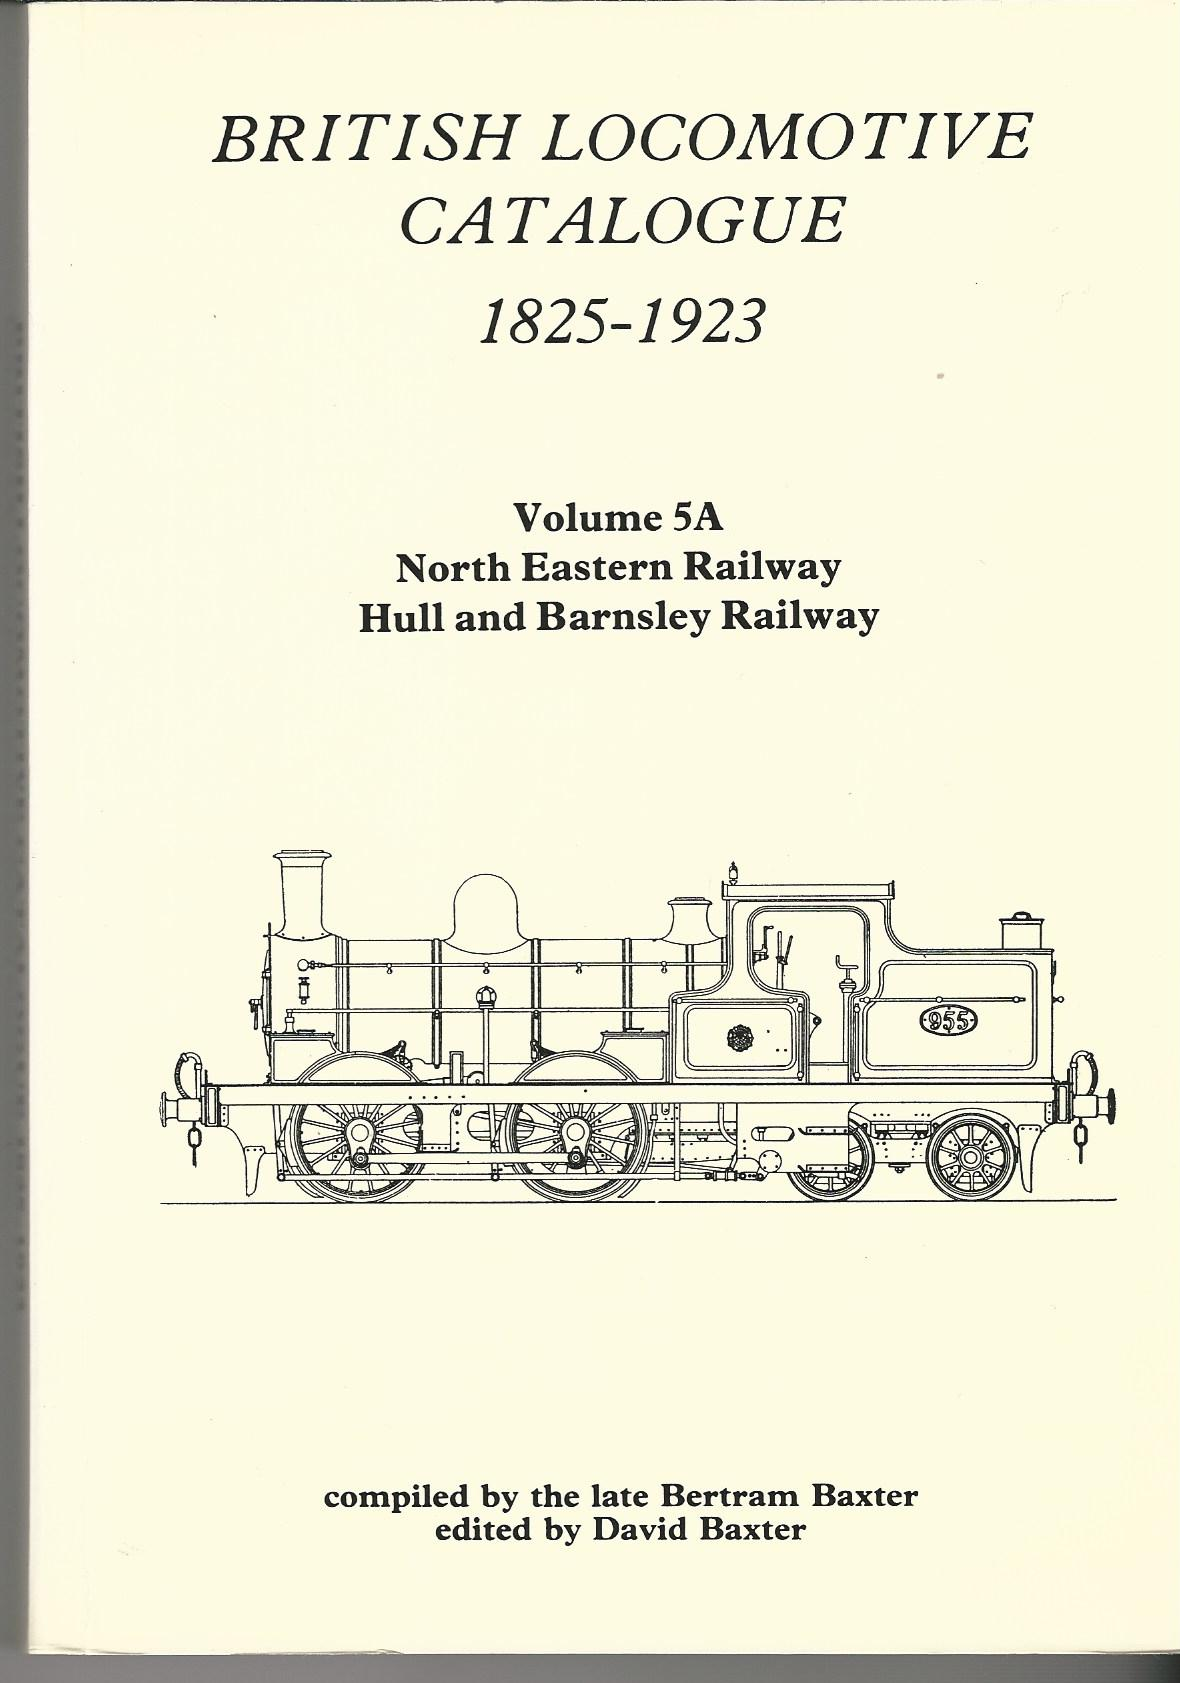 Image for British Locomotive Catalogue 1825 - 1923 Volume 5A - North Eastern Railway - Hull and Barnsley Railway and Vol 5B Great Northern Railway and Great Central Railway.